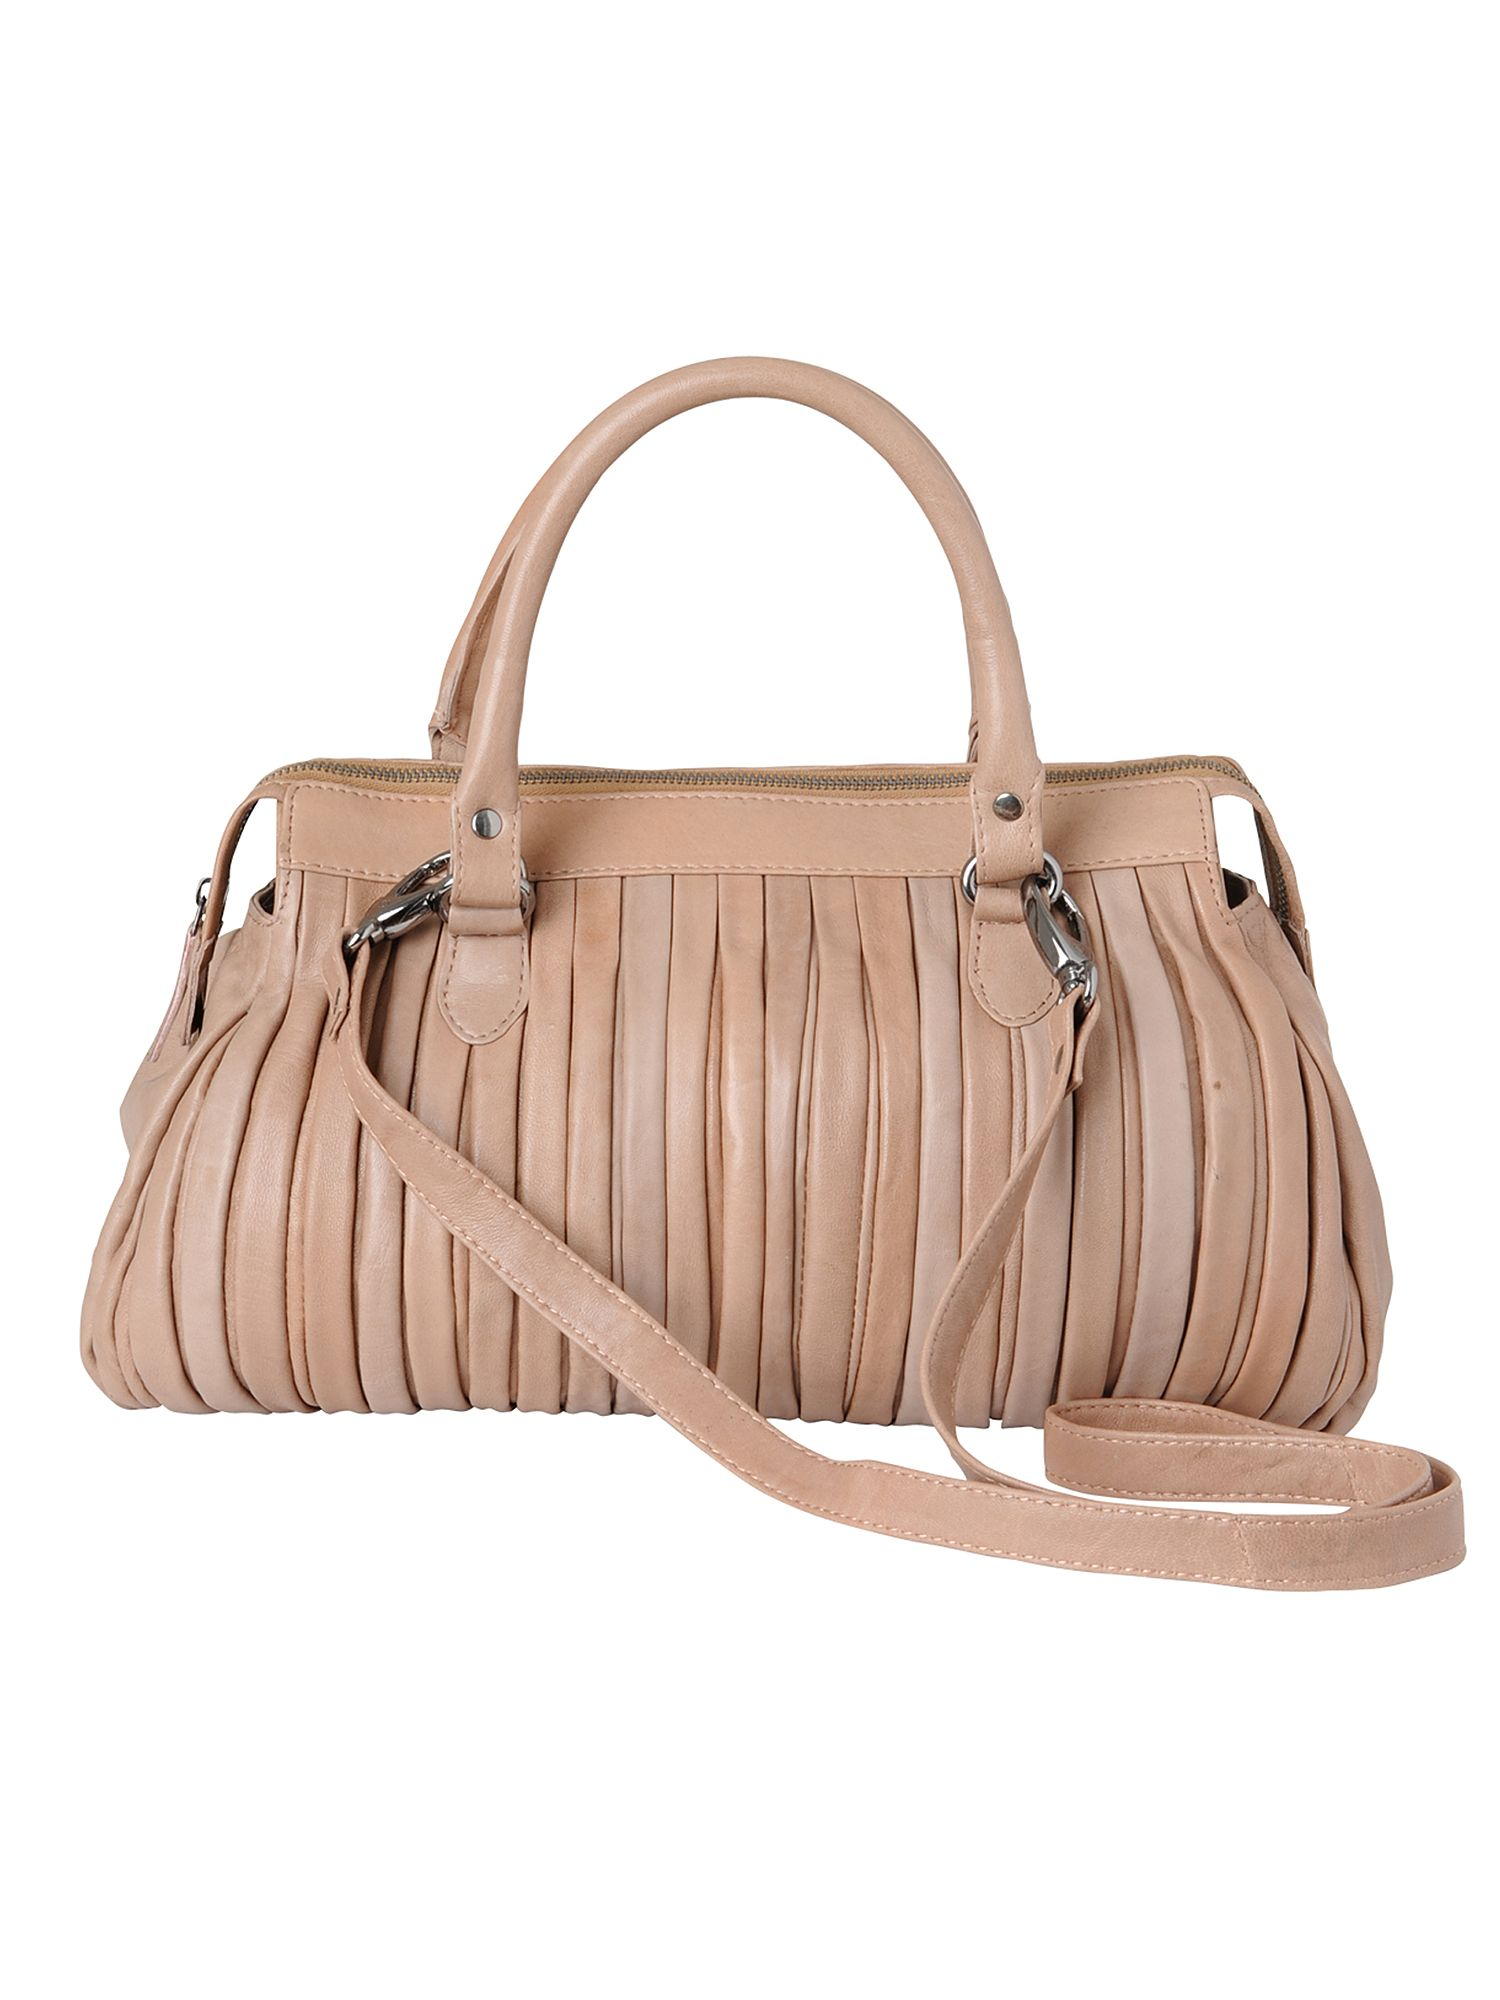 Phase Eight Kensington hand bag Mocha product image